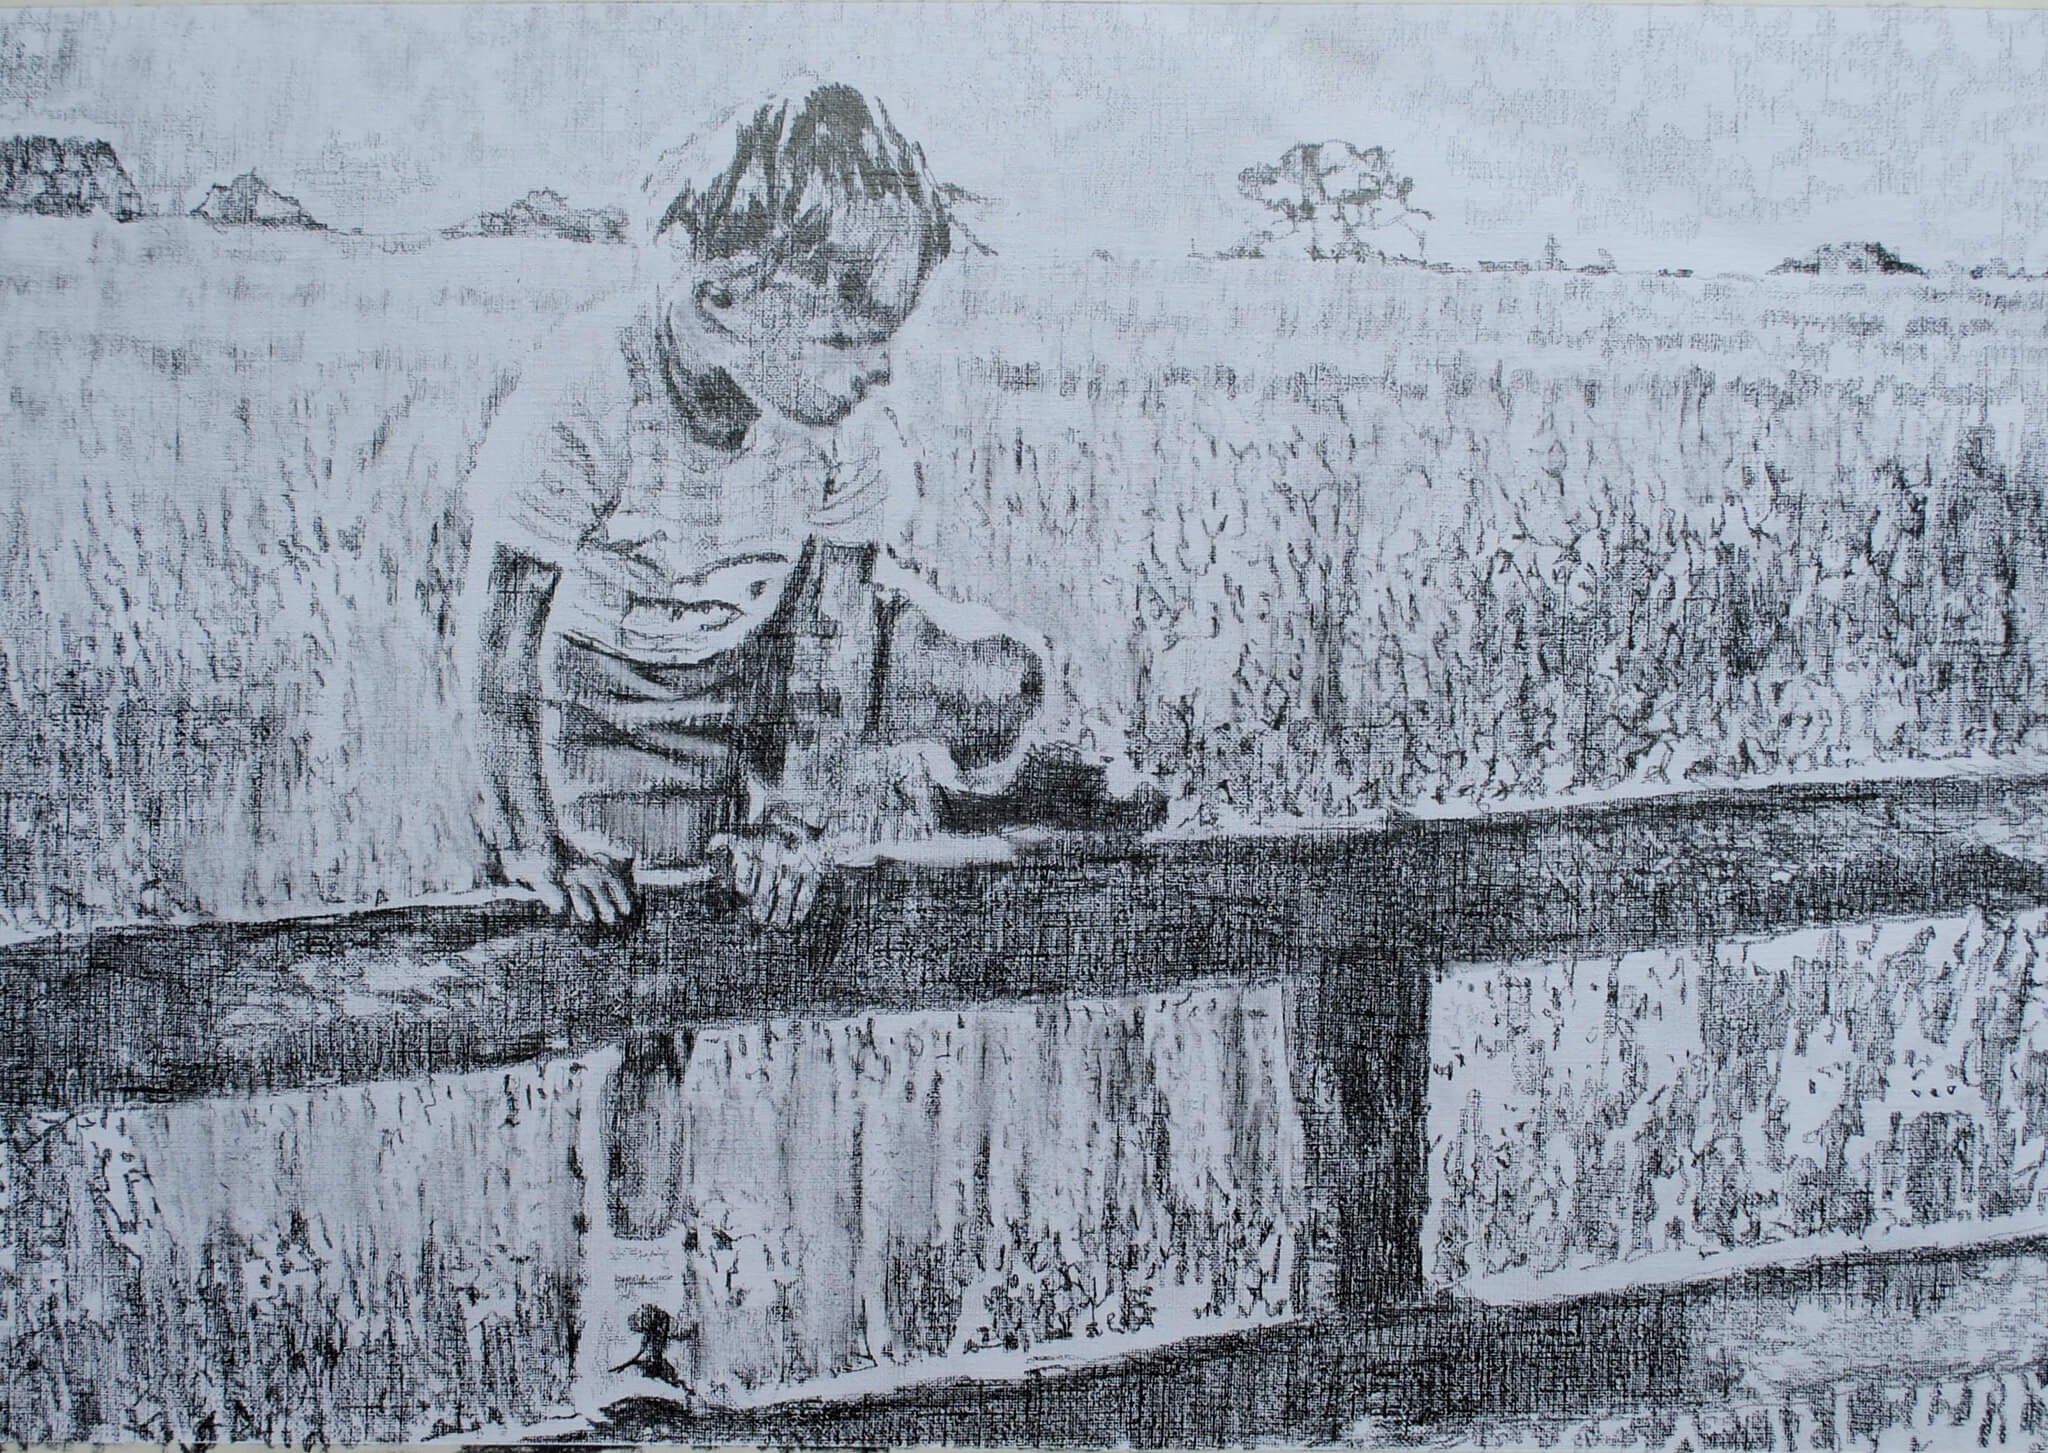 A Shropshire lad pencil on paper biographical portrait by Stella Tooth